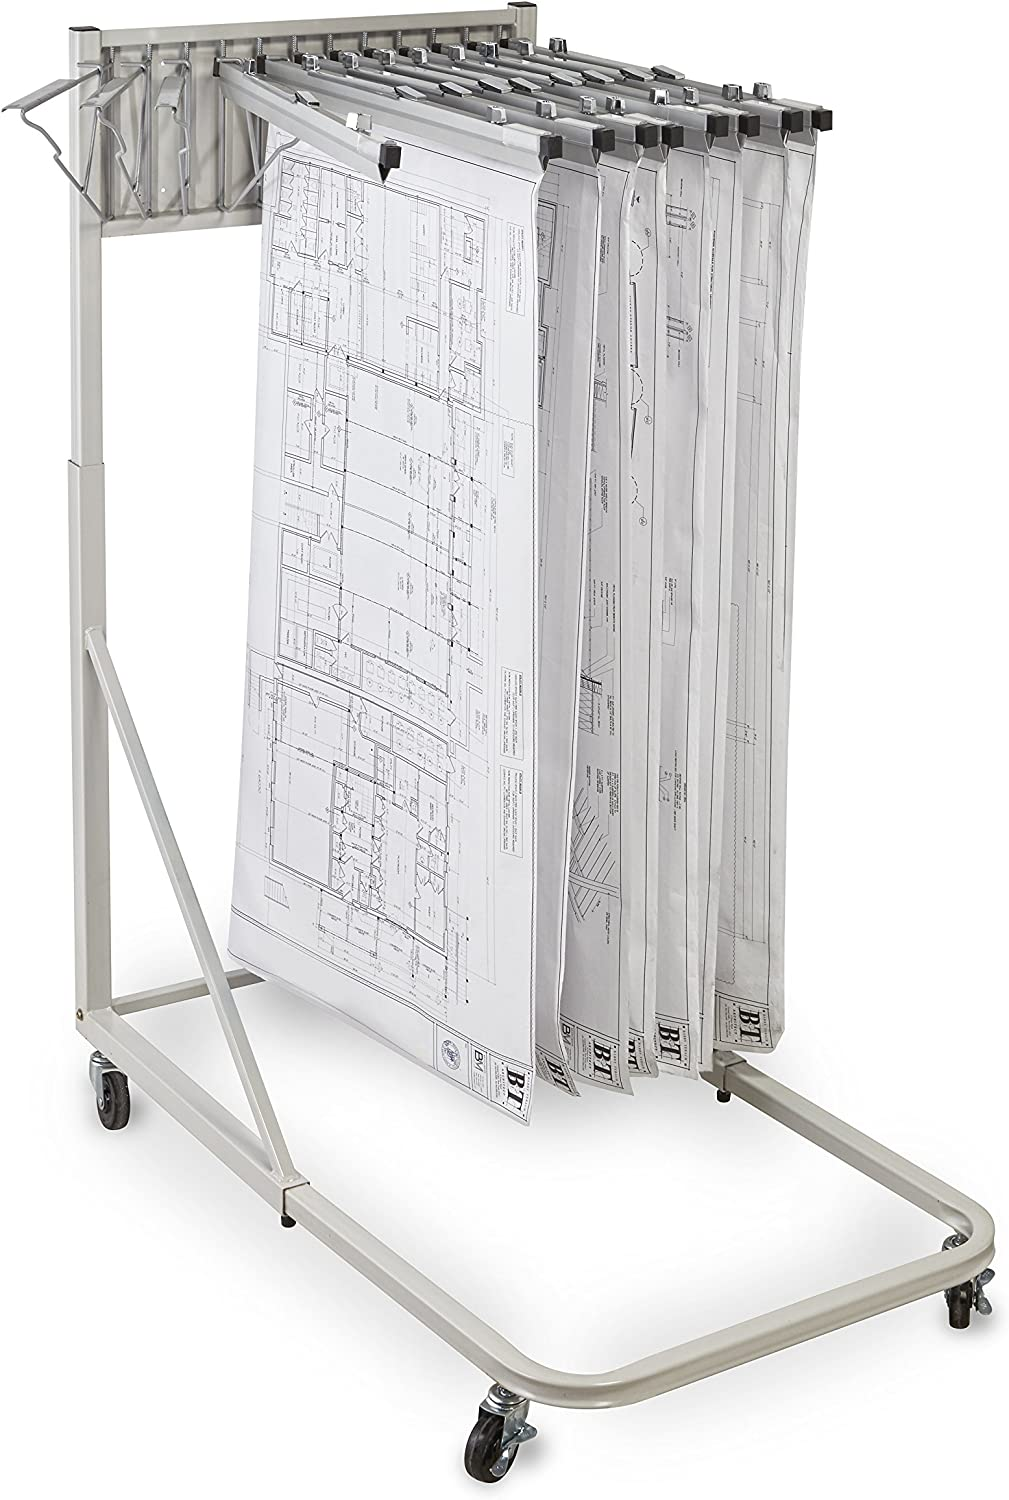 Adir Corp. 613 Vertical File Rolling Stand for Blueprints - Sand Beige